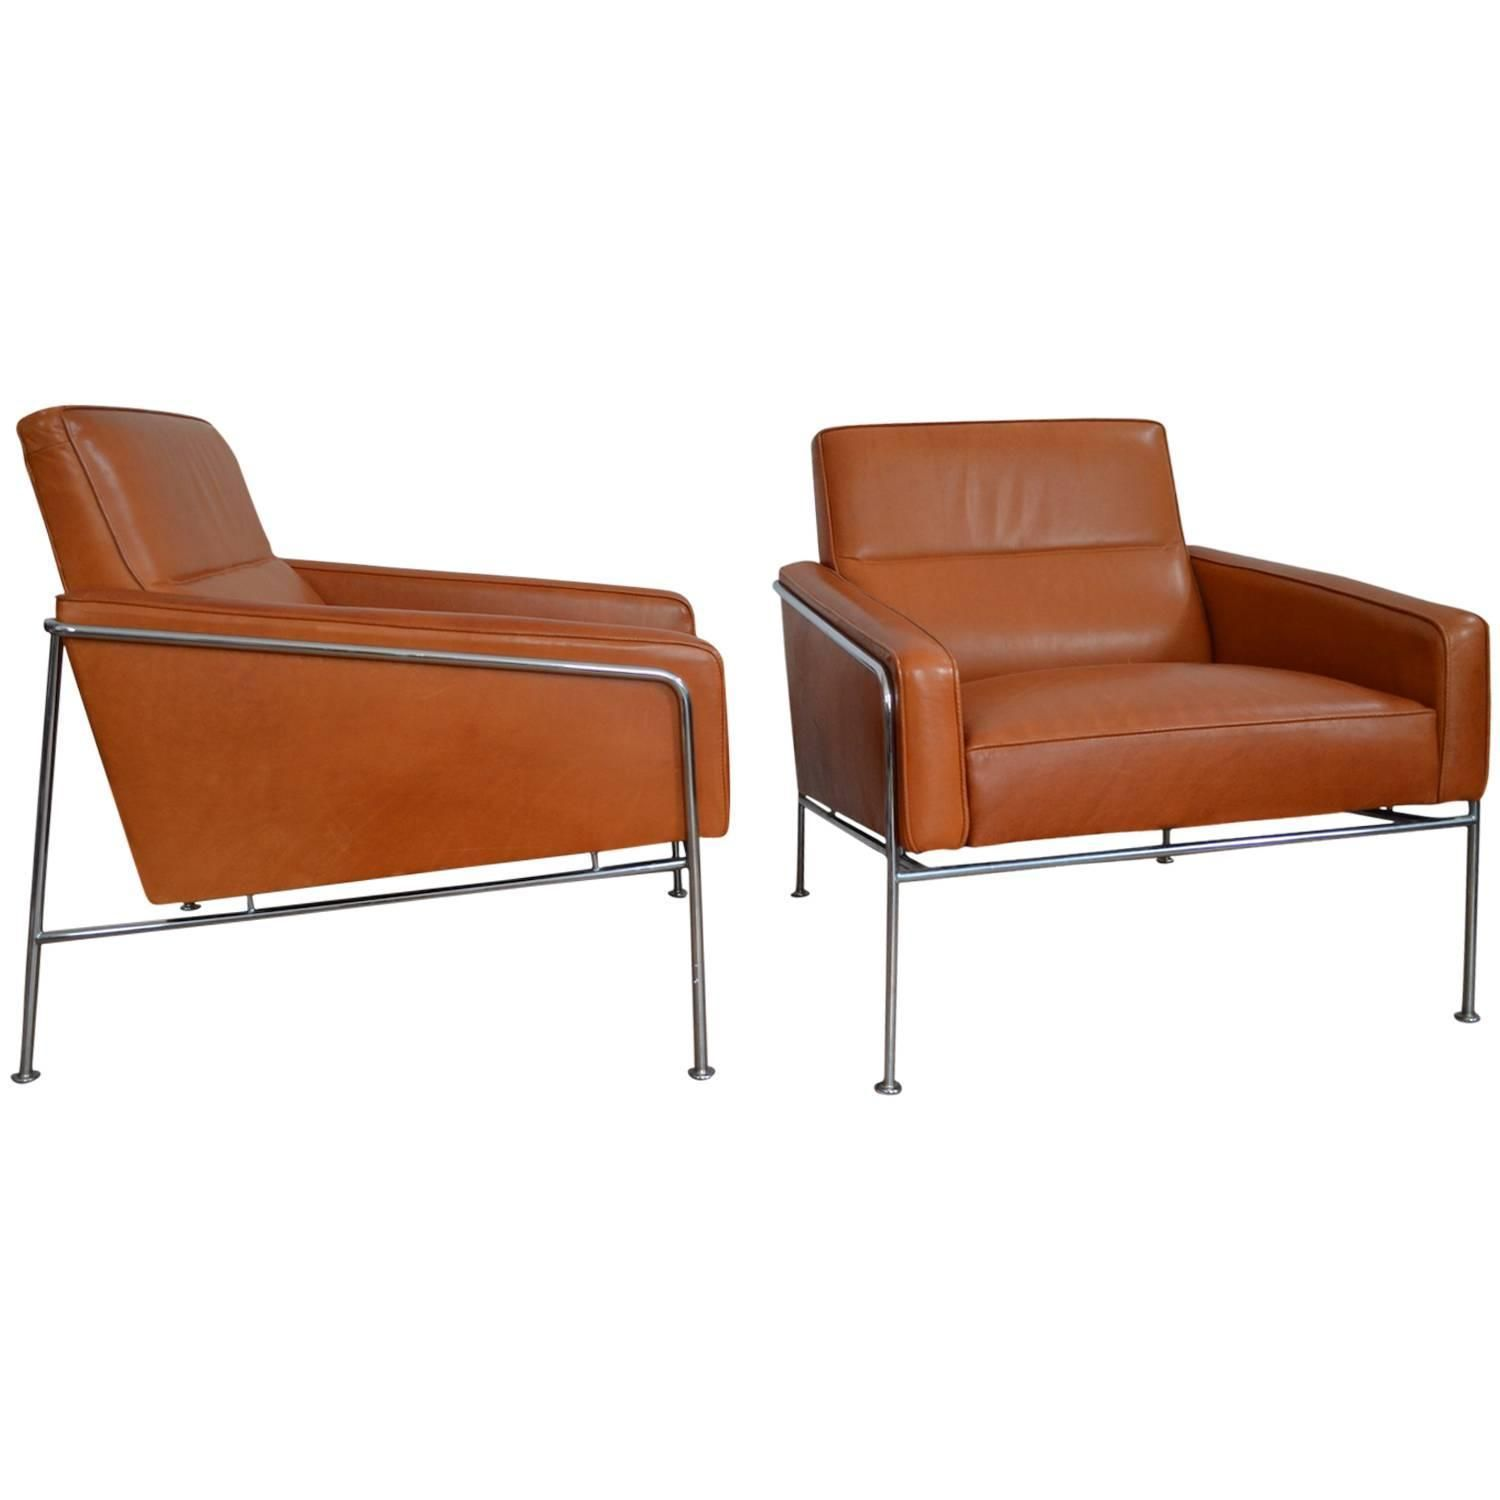 This arne jacobsen swan chair in cognac leather by fritz hansen is no - Leather Pair Of Arne Jacobsen Leather Series 3300 Lounge Chairs For Fritz Hansen